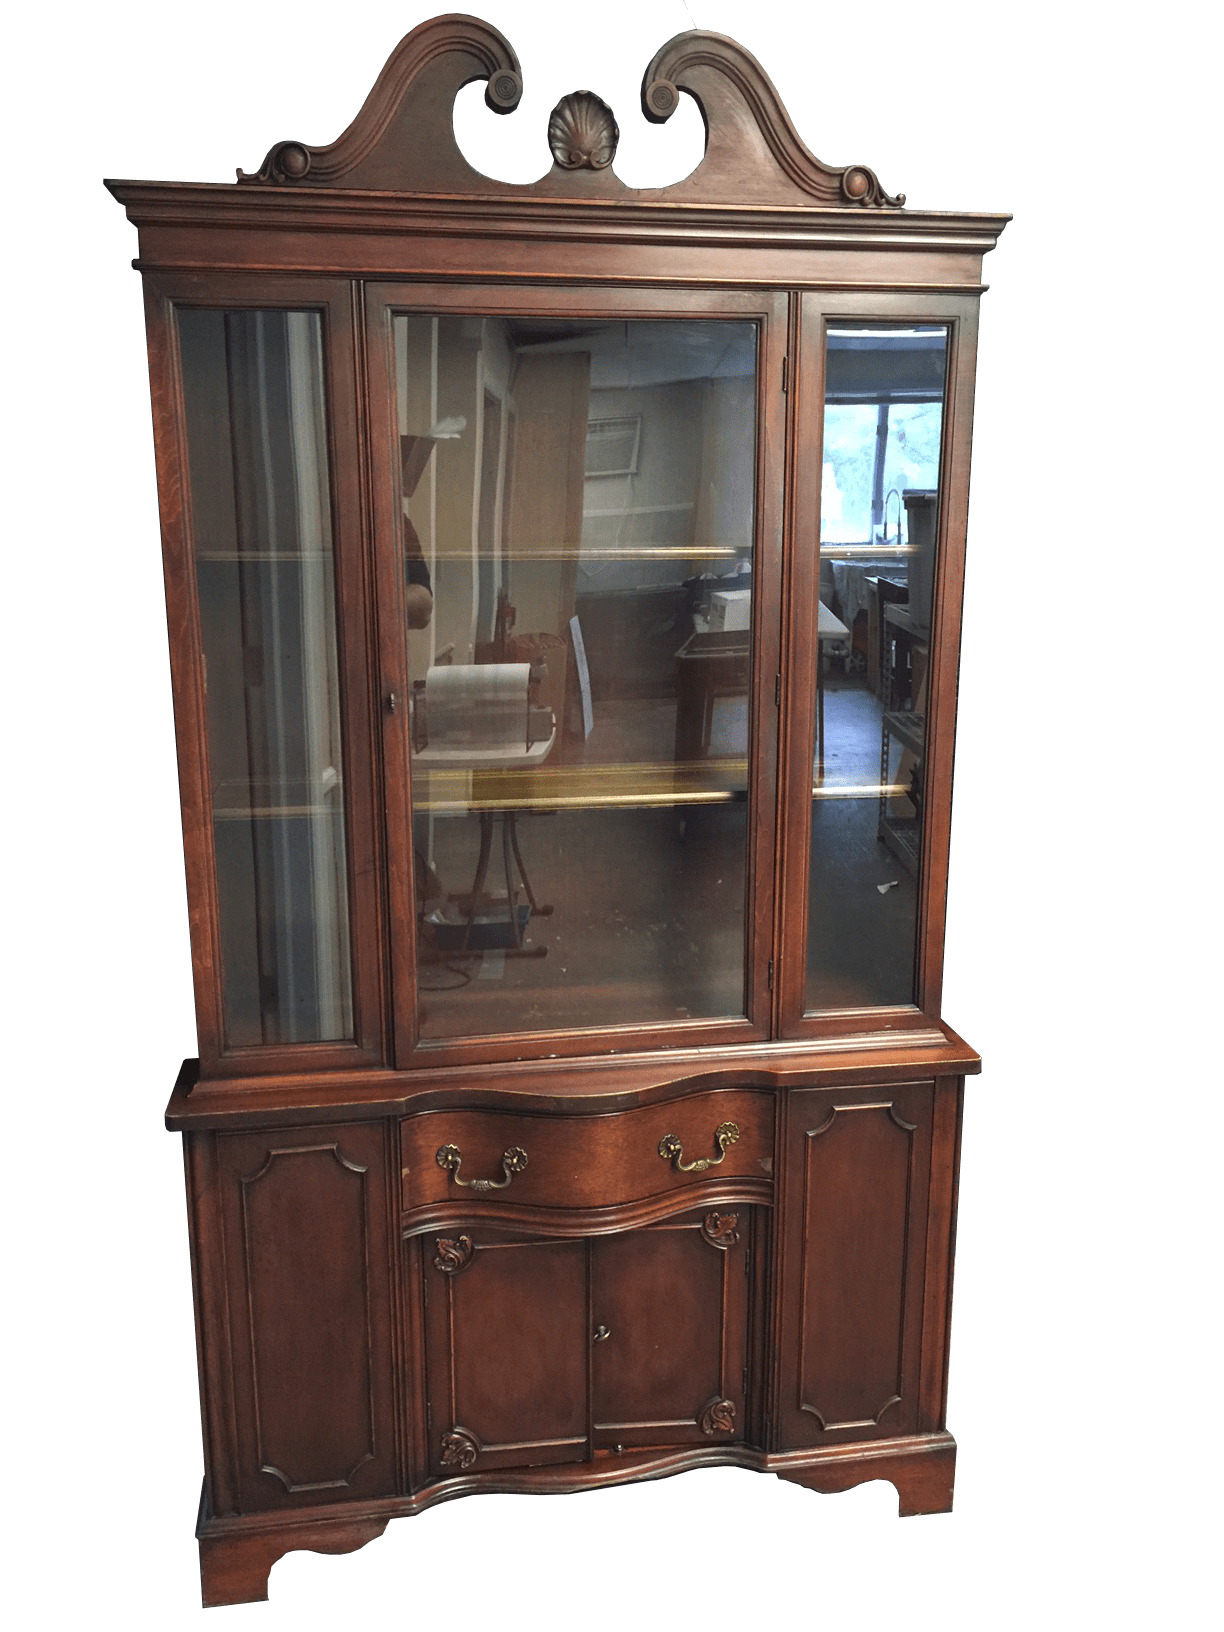 A clean hutch after cleaning by Mammoth Restoration